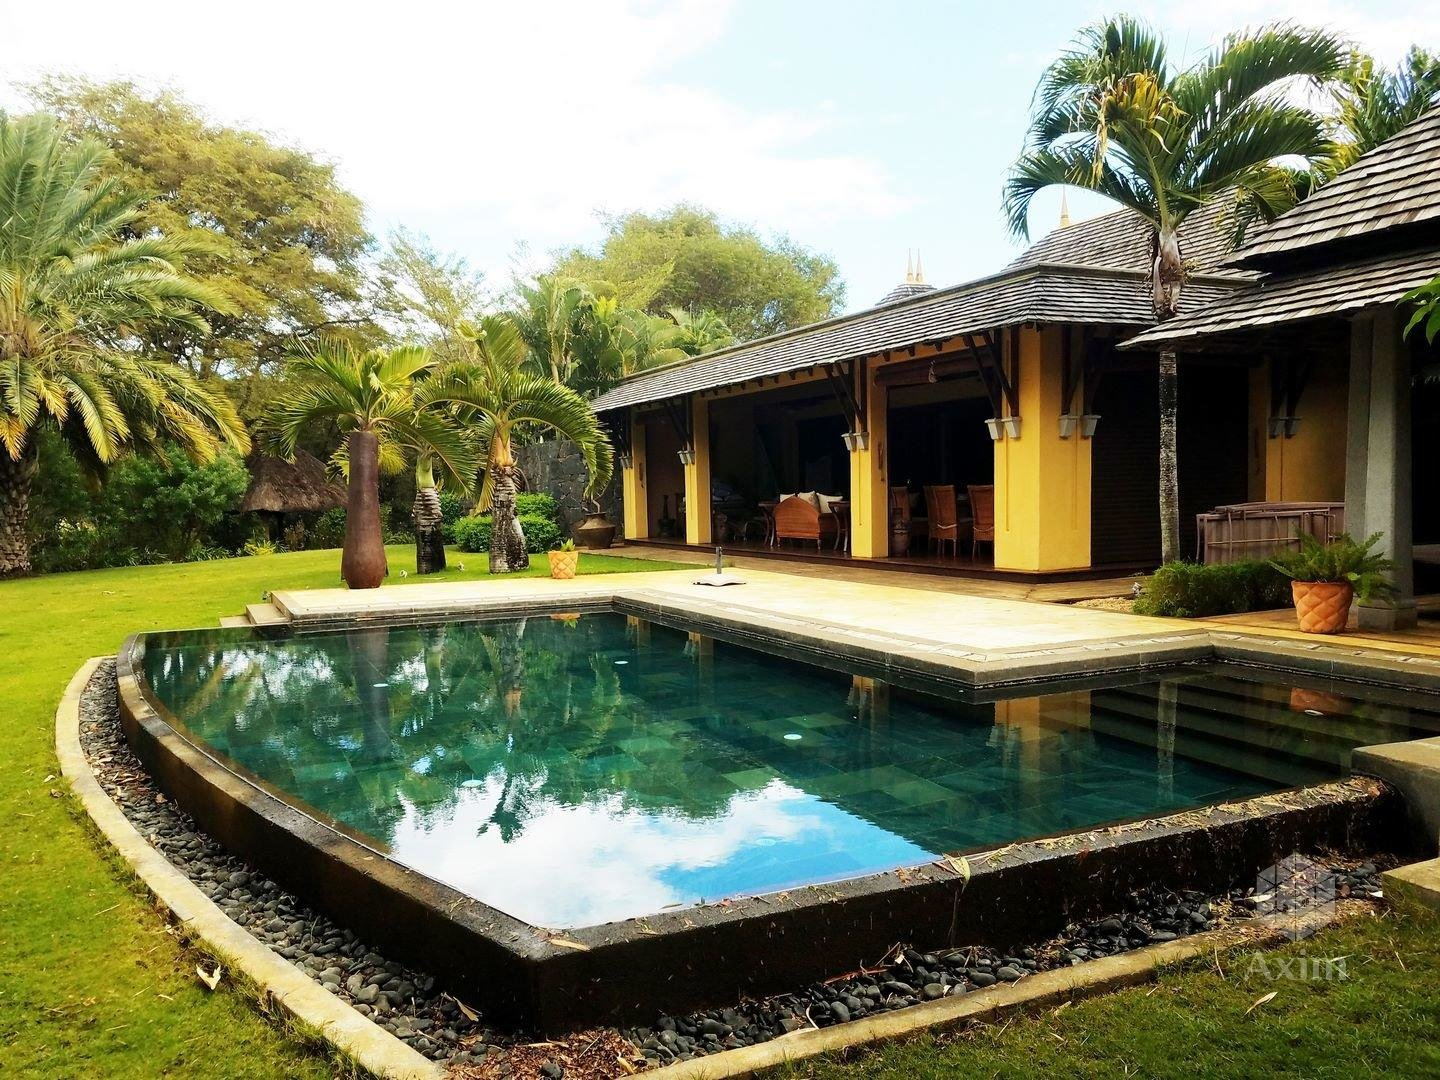 Mauritius - Luxury 4 bedroom villa on 4000m2 of land + Studio